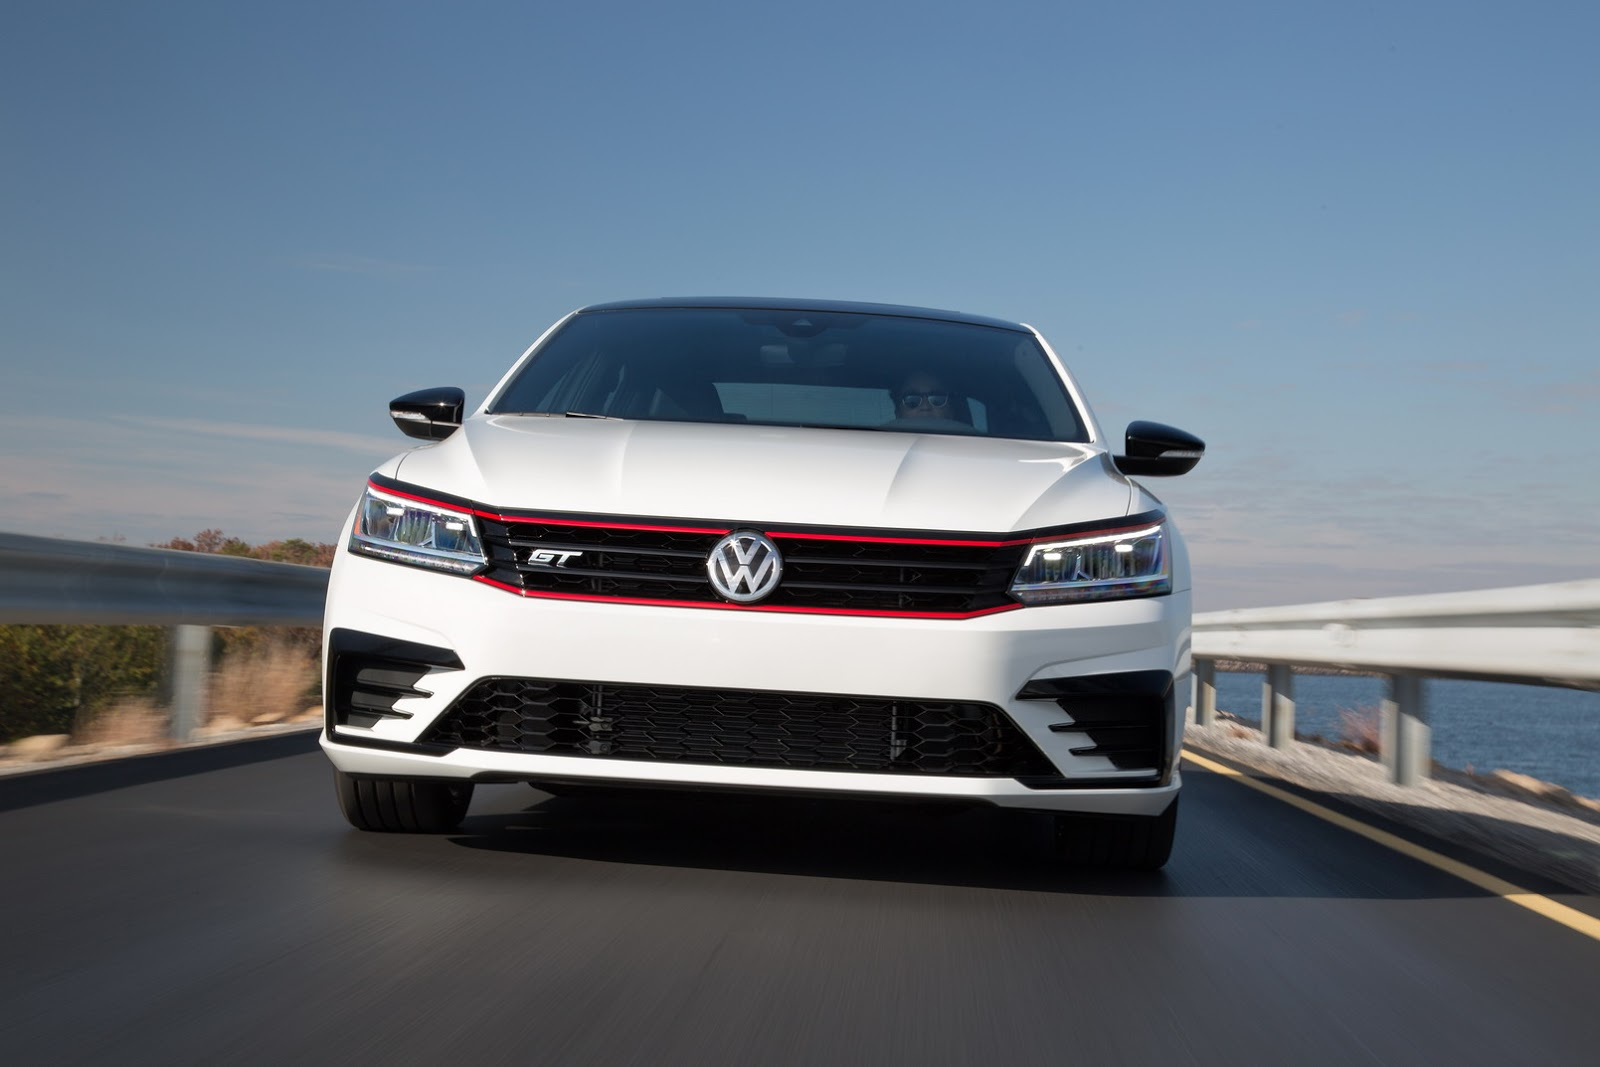 hight resolution of 2018 volkswagen passat gt getting vr6 engine and golf gti looks